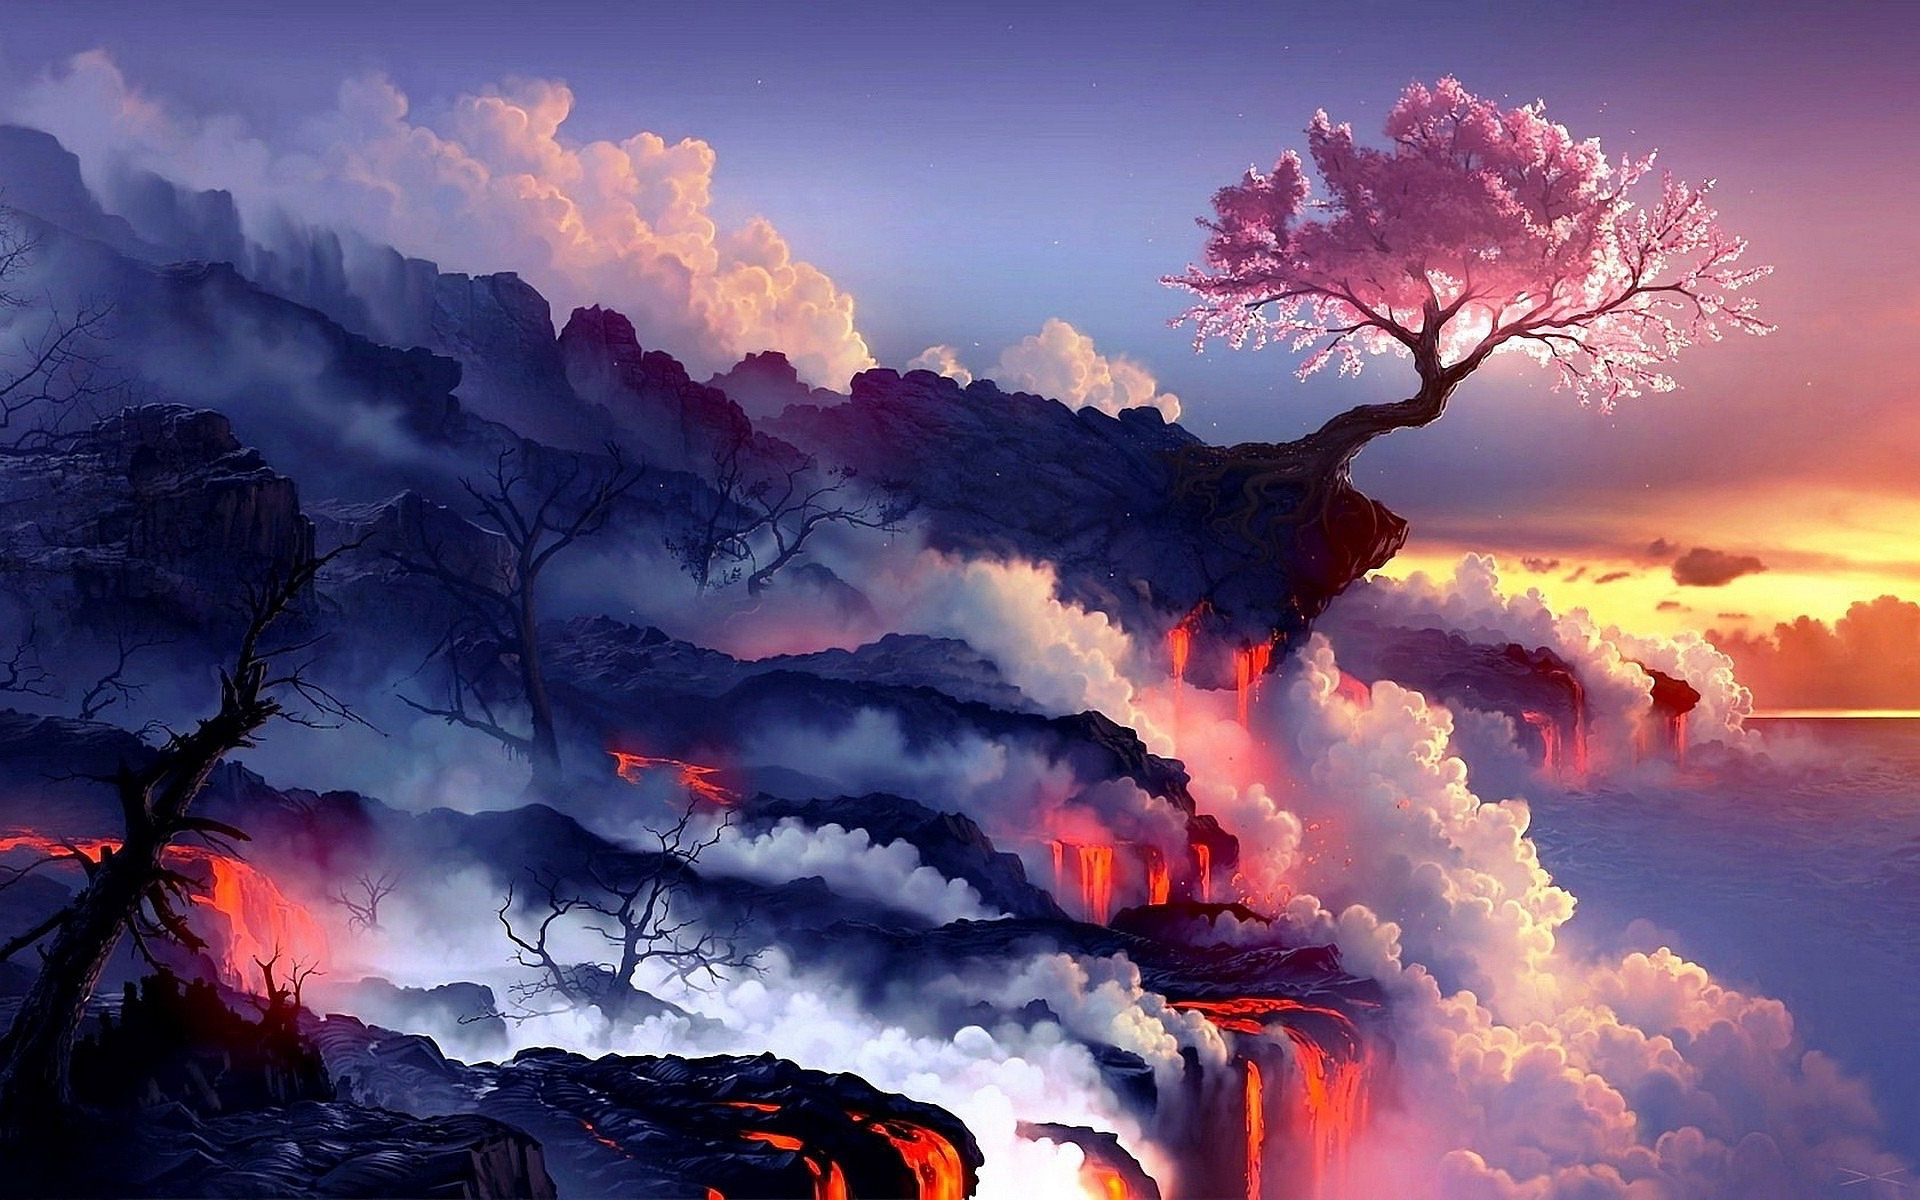 K Ultra Hd K Ultra Hd Hd Hd Chainimage 1920 1200 8k Ultra Hd Wallpapers 12 Wallpapers Adorable Wal Landscape Wallpaper Fantasy Landscape Volcano Wallpaper